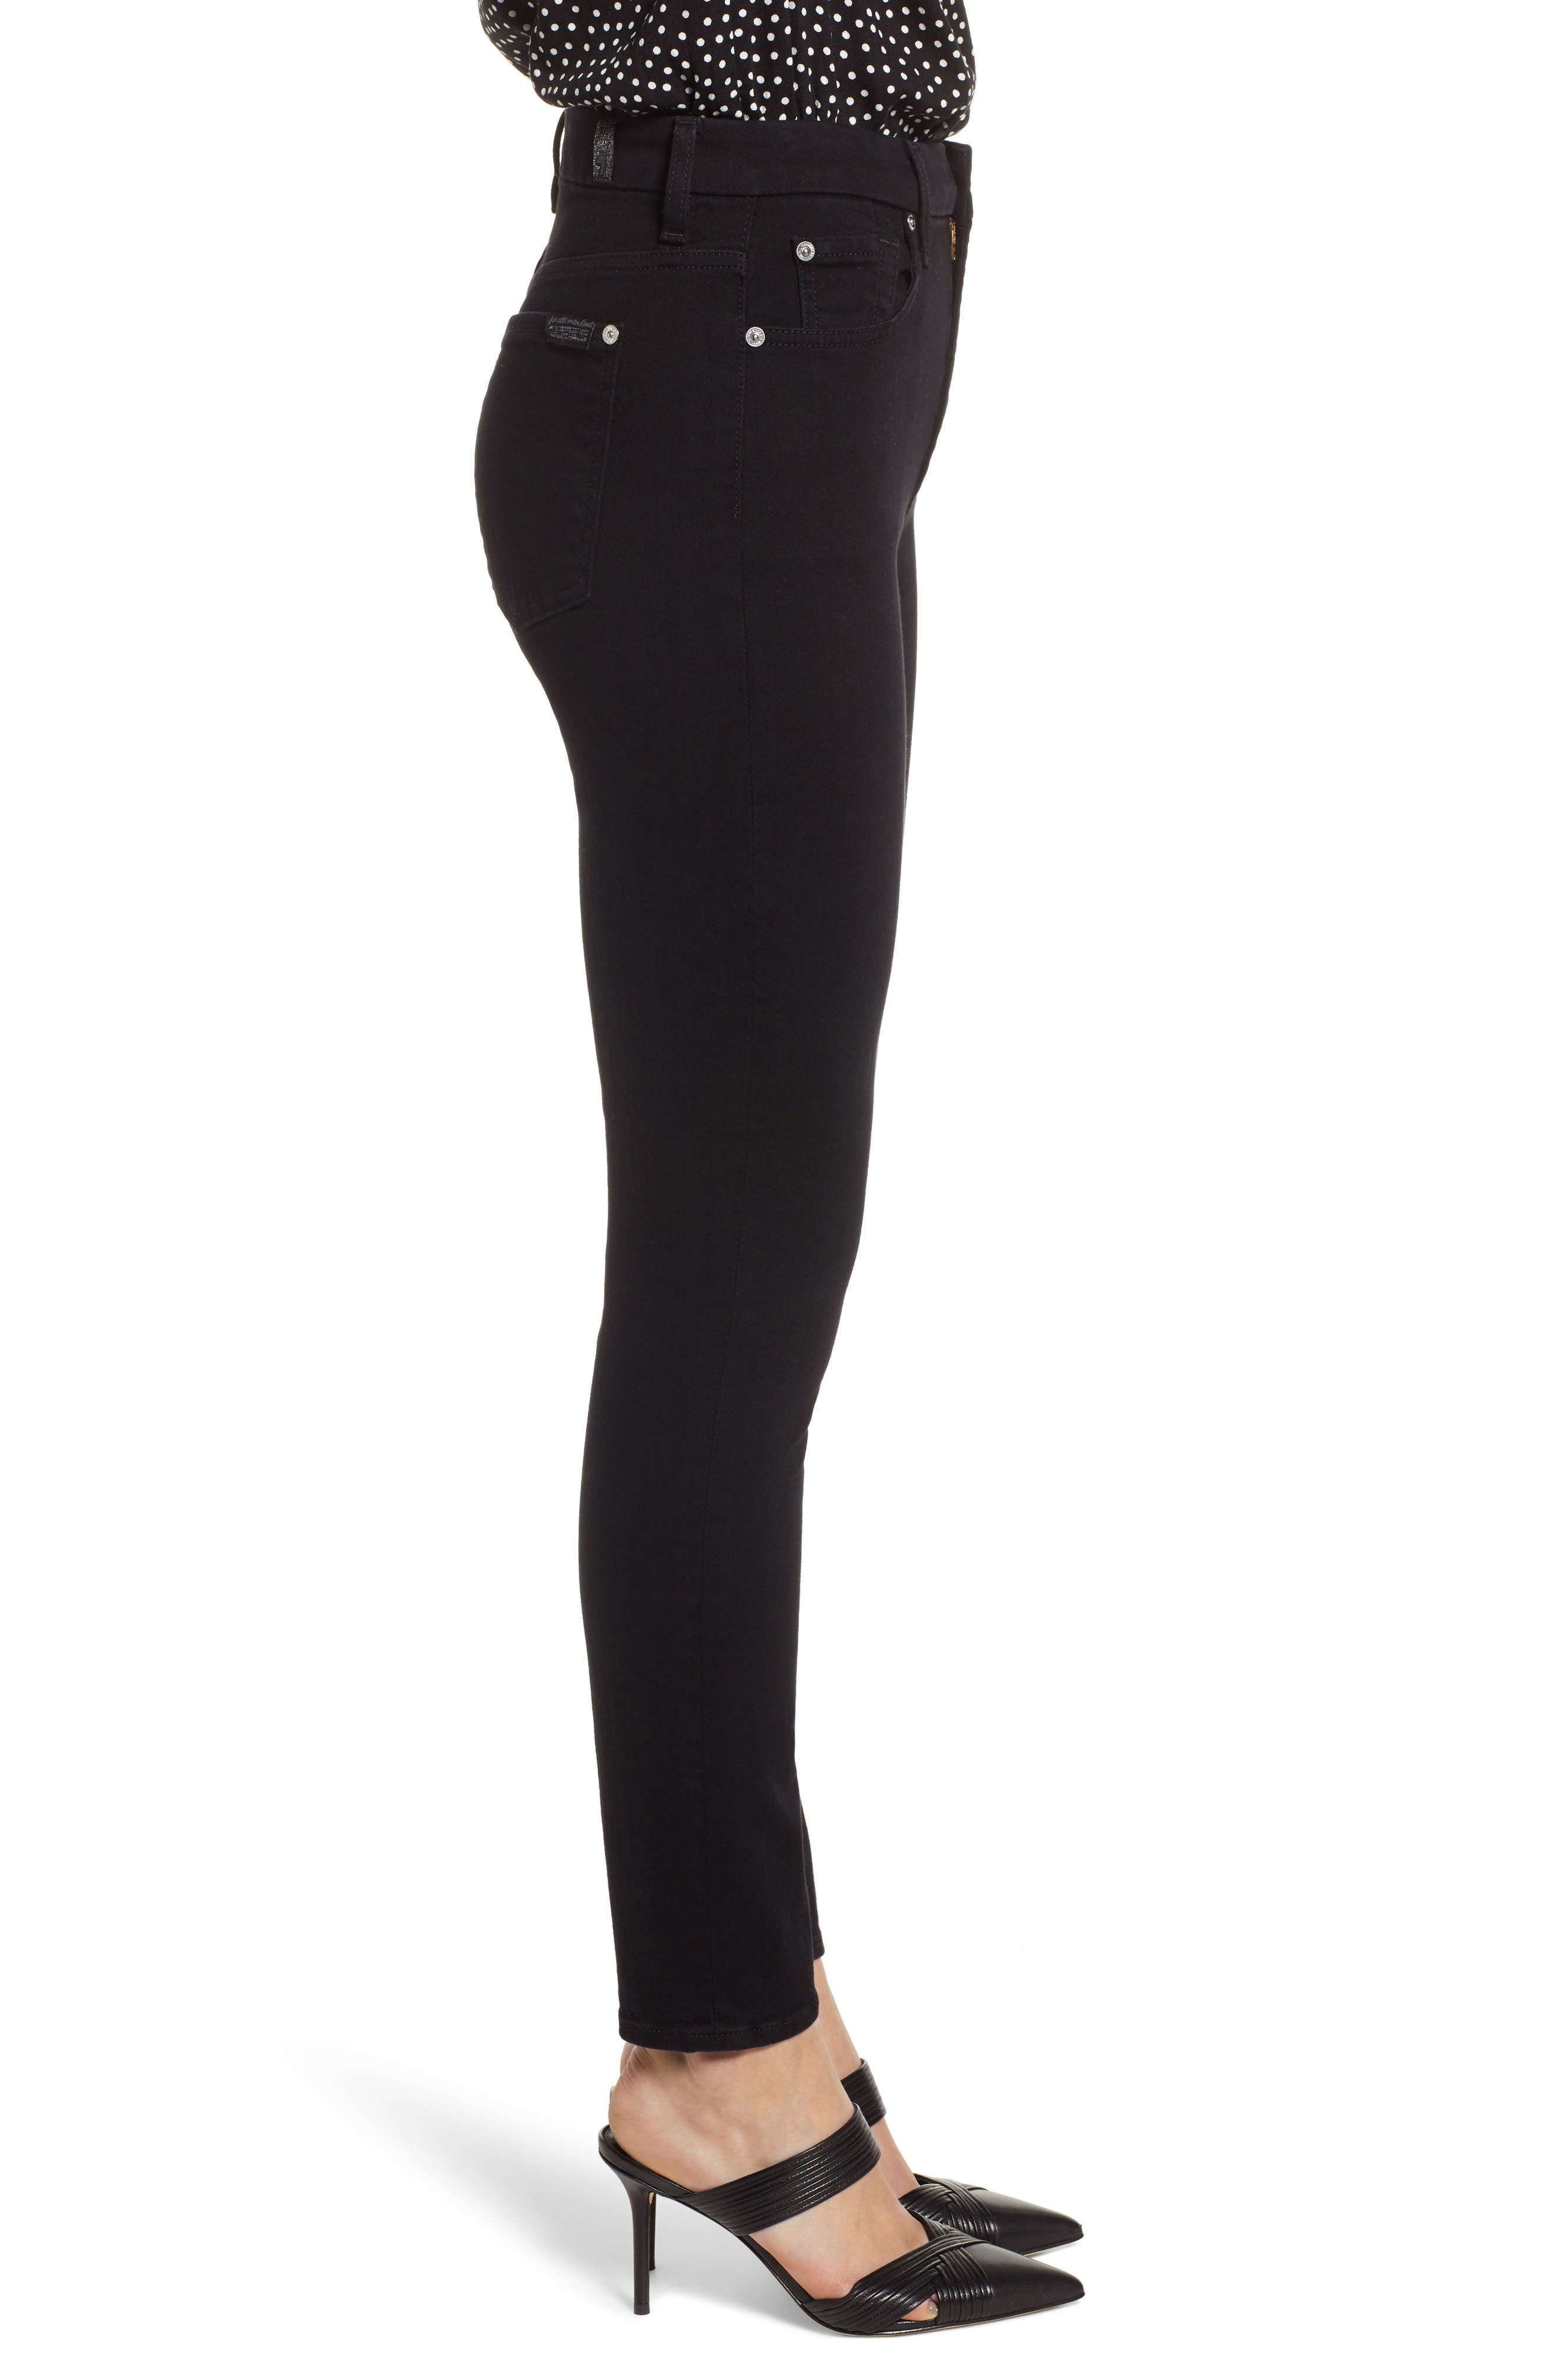 7 FOR ALL MANKIND<SUP>®</SUP>, Aubrey Super High Waist Ankle Skinny Jeans, Alternate thumbnail 4, color, PITCH BLACK